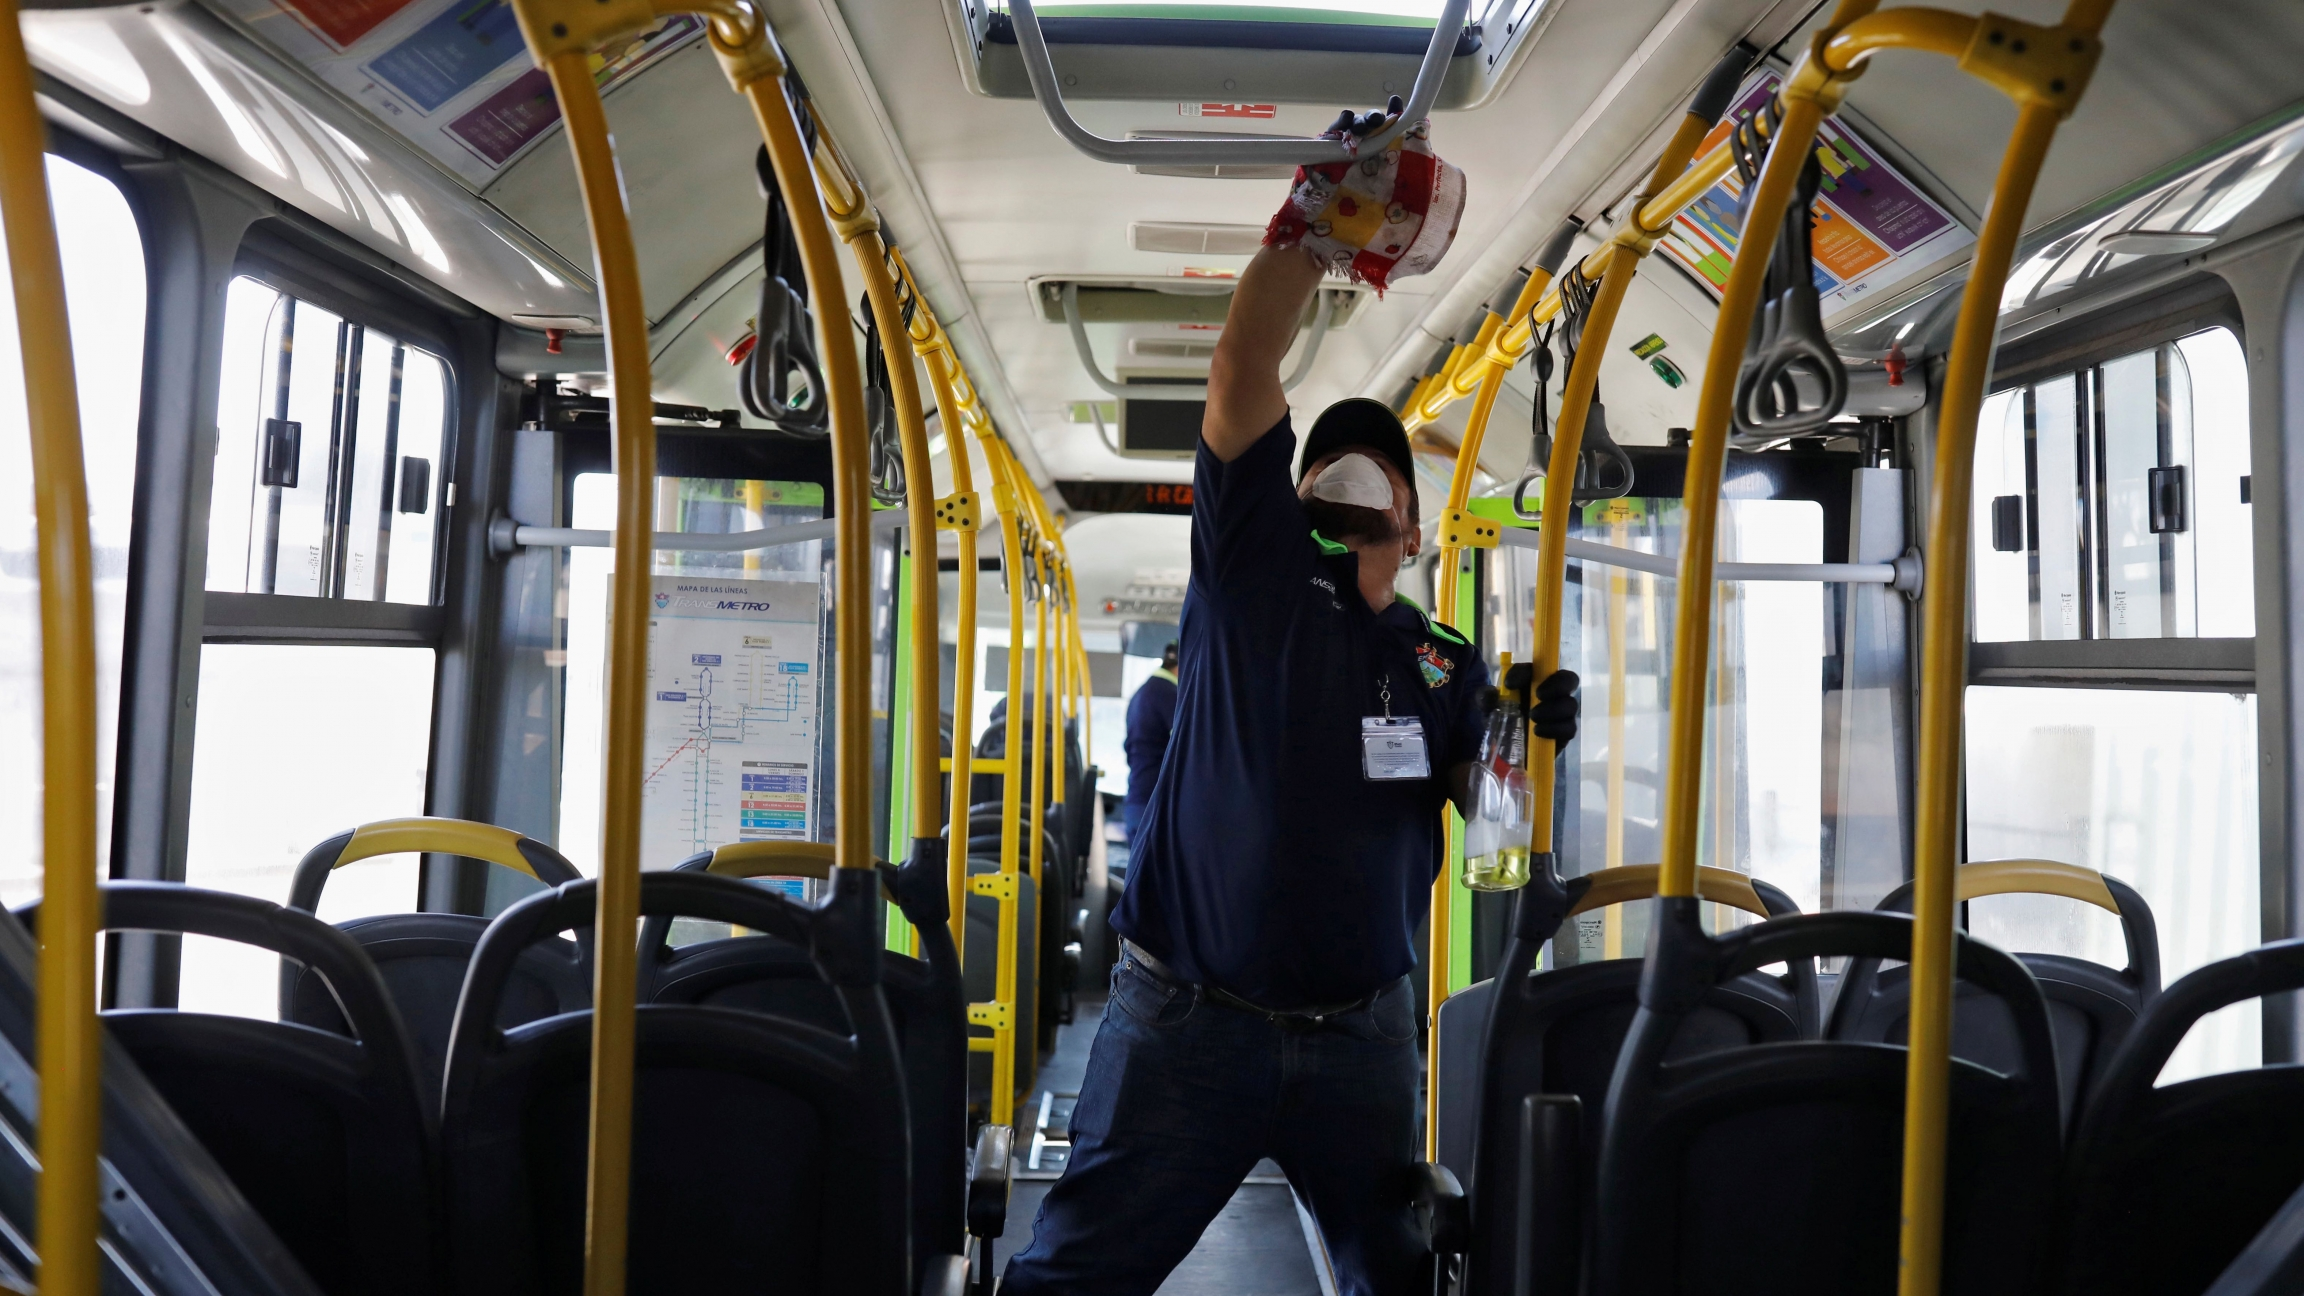 A worker wears a protective face mask works while cleaning the interior of a public bus, amid concerns over the spread of coronavirus disease (COVID-19), in Guatemala City, Guatemala, March 15, 2020.